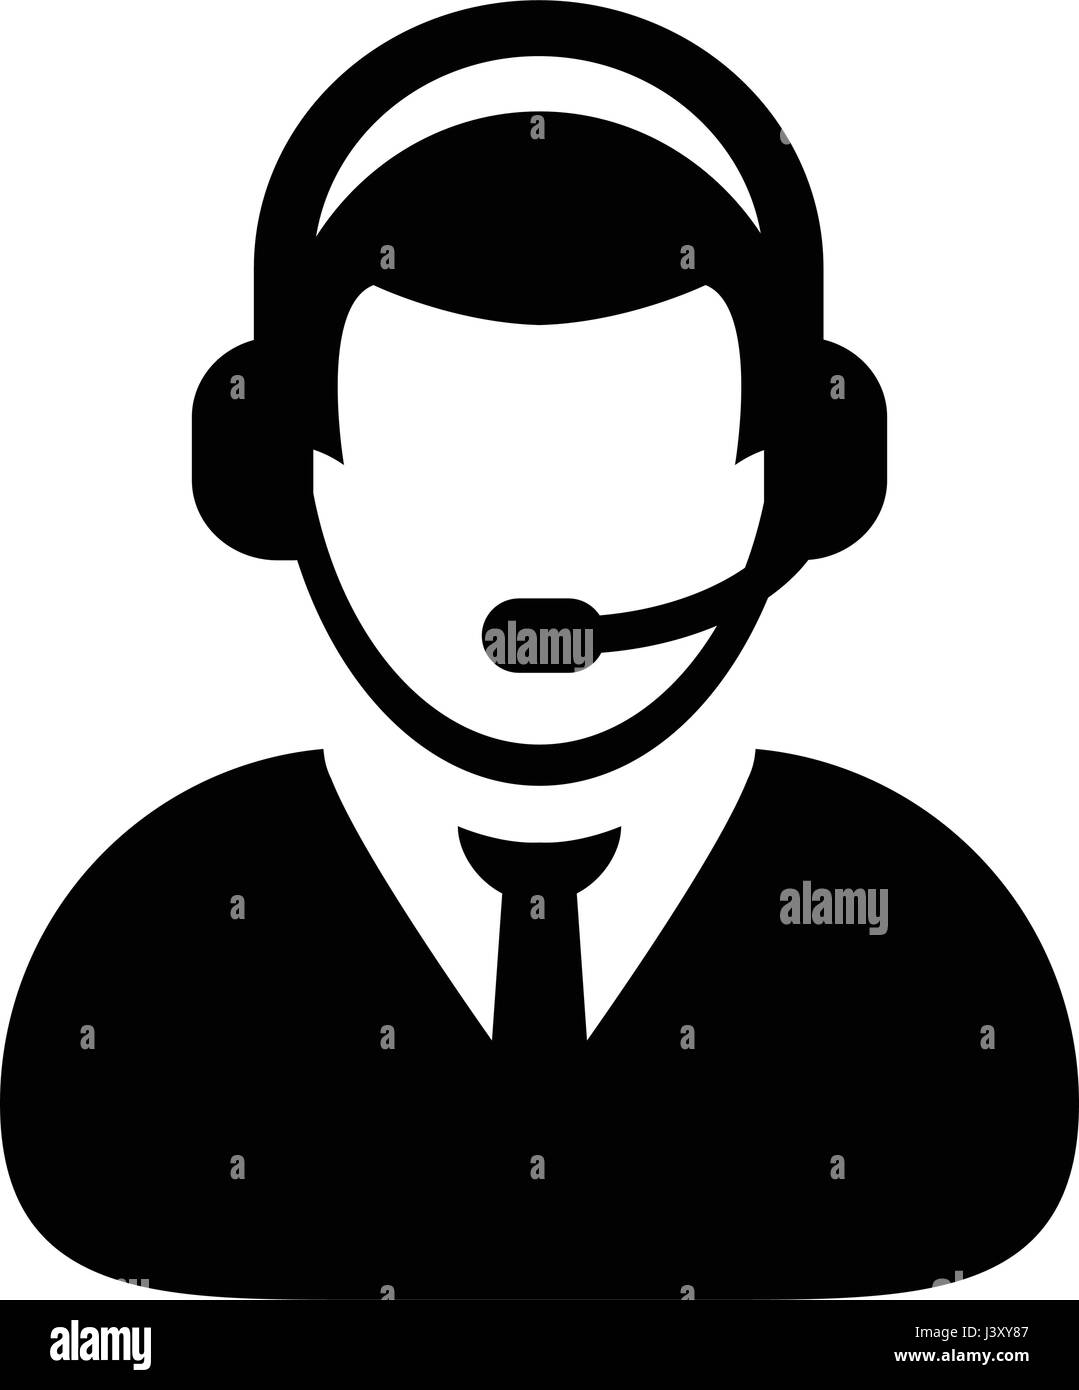 a01ac94c25 Customer Care Service   Support Icon - Vector Person Avatar With Headphone  in Glyph Pictogram Symbol illustration